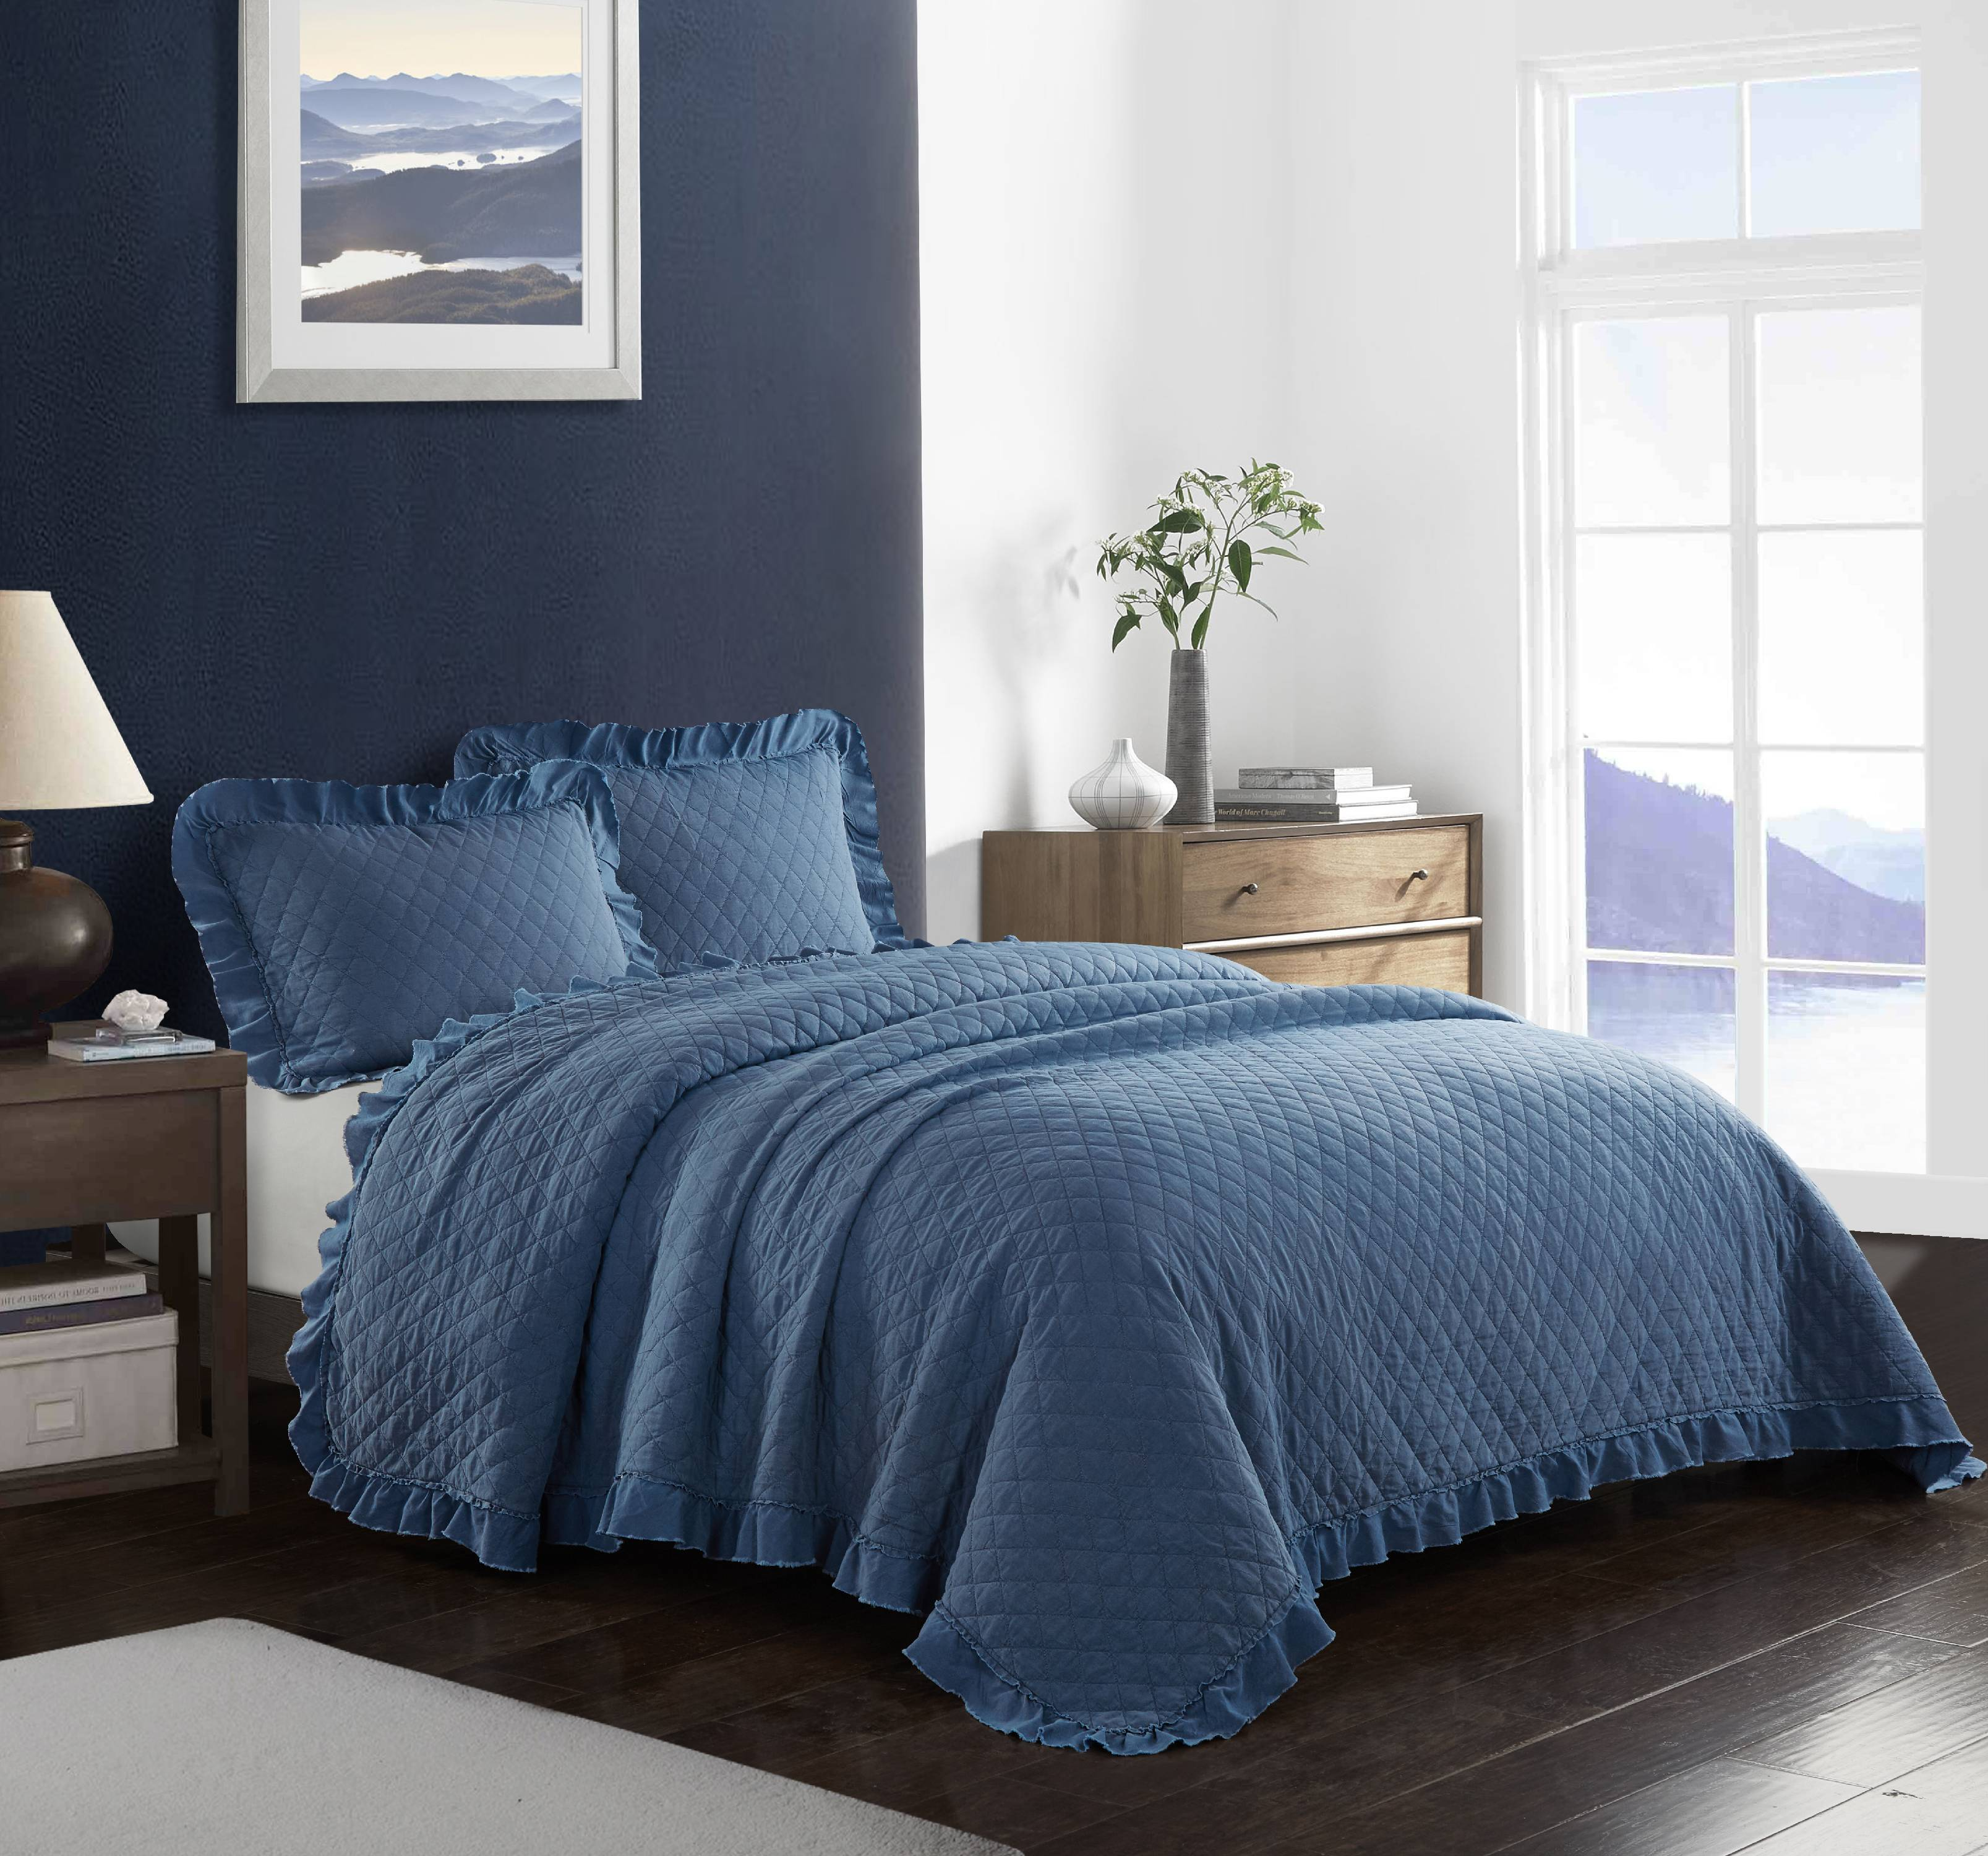 Better Homes & Gardens Acid Wash Ruffle Quilt Set